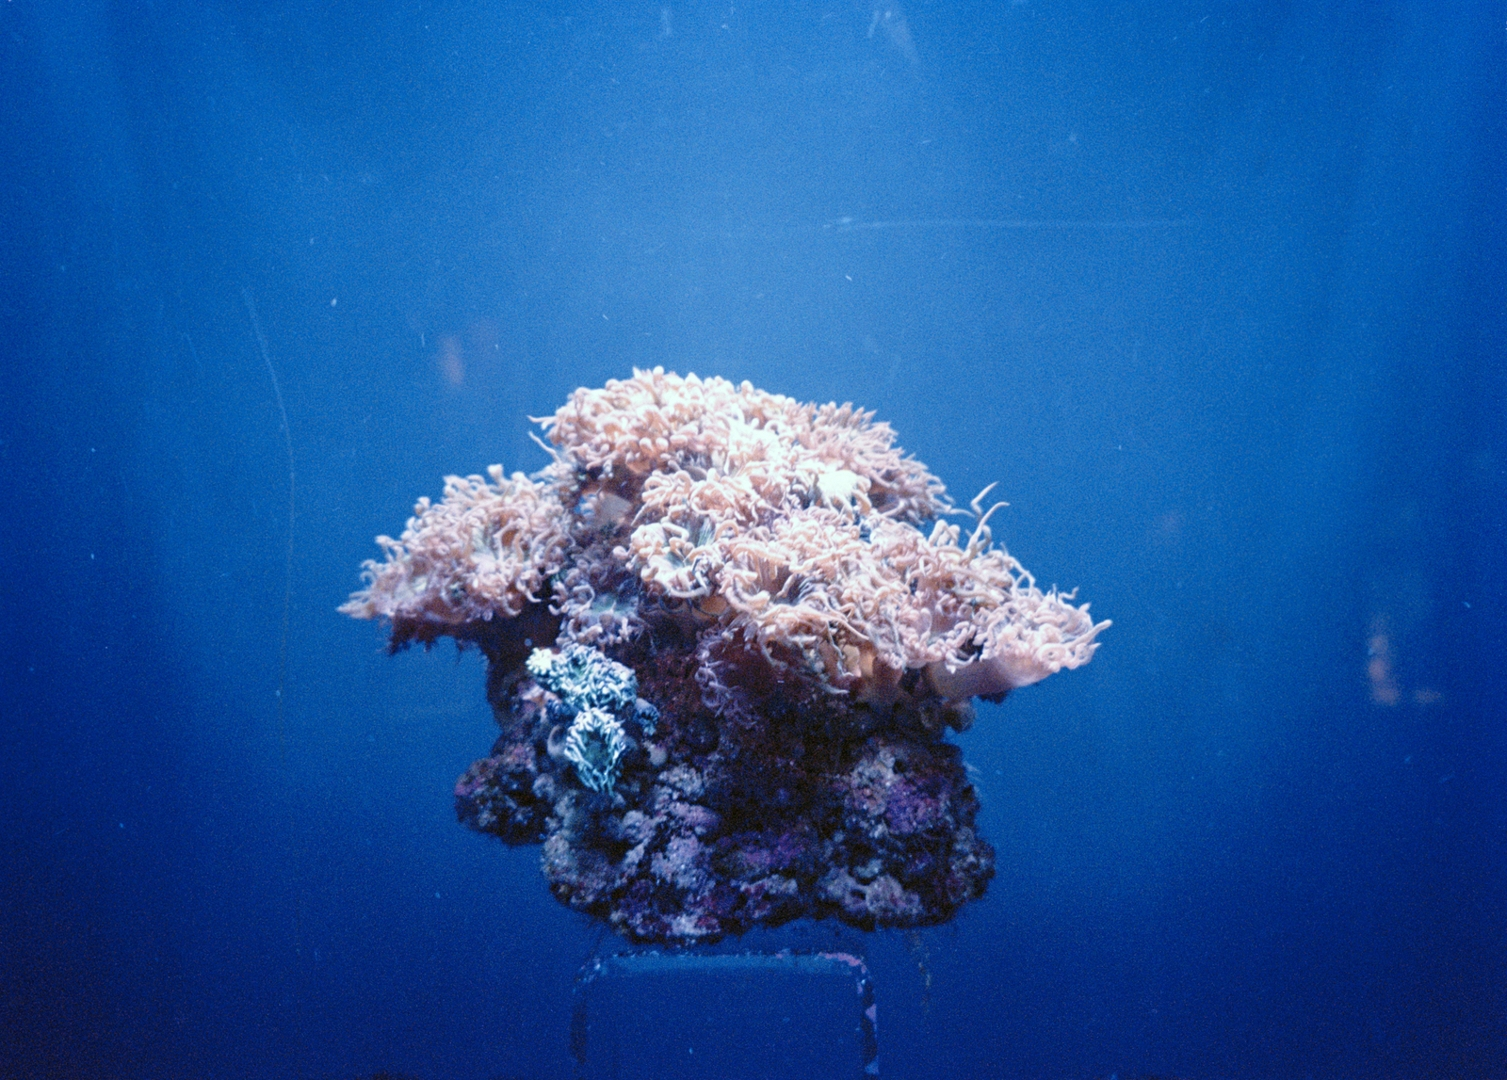 Coral, from the series Light of Day  image